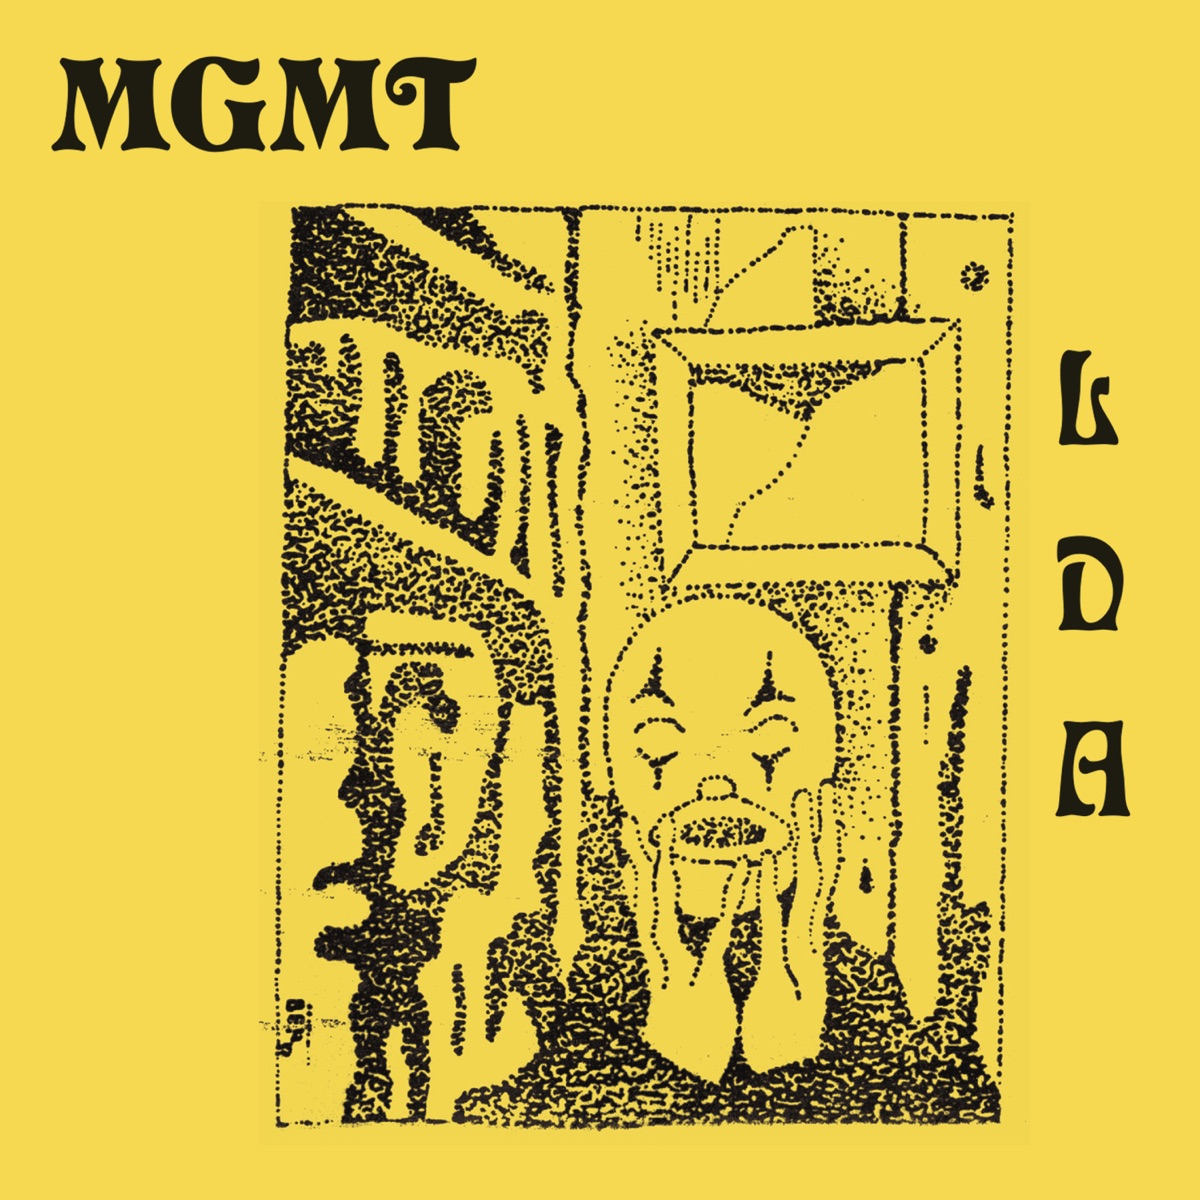 Little Dark Age MGMT CD cover